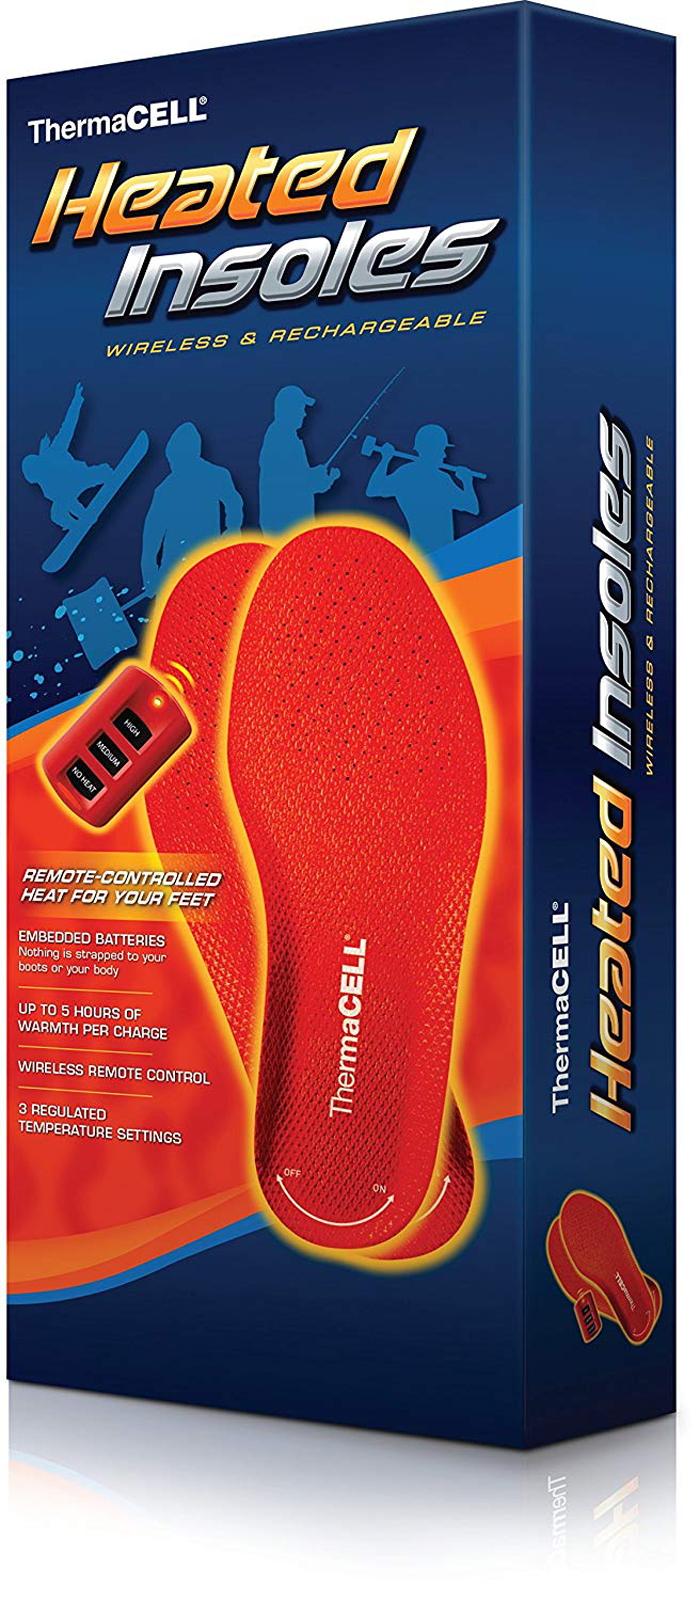 thermacell rechargeable heated shoe insoles box